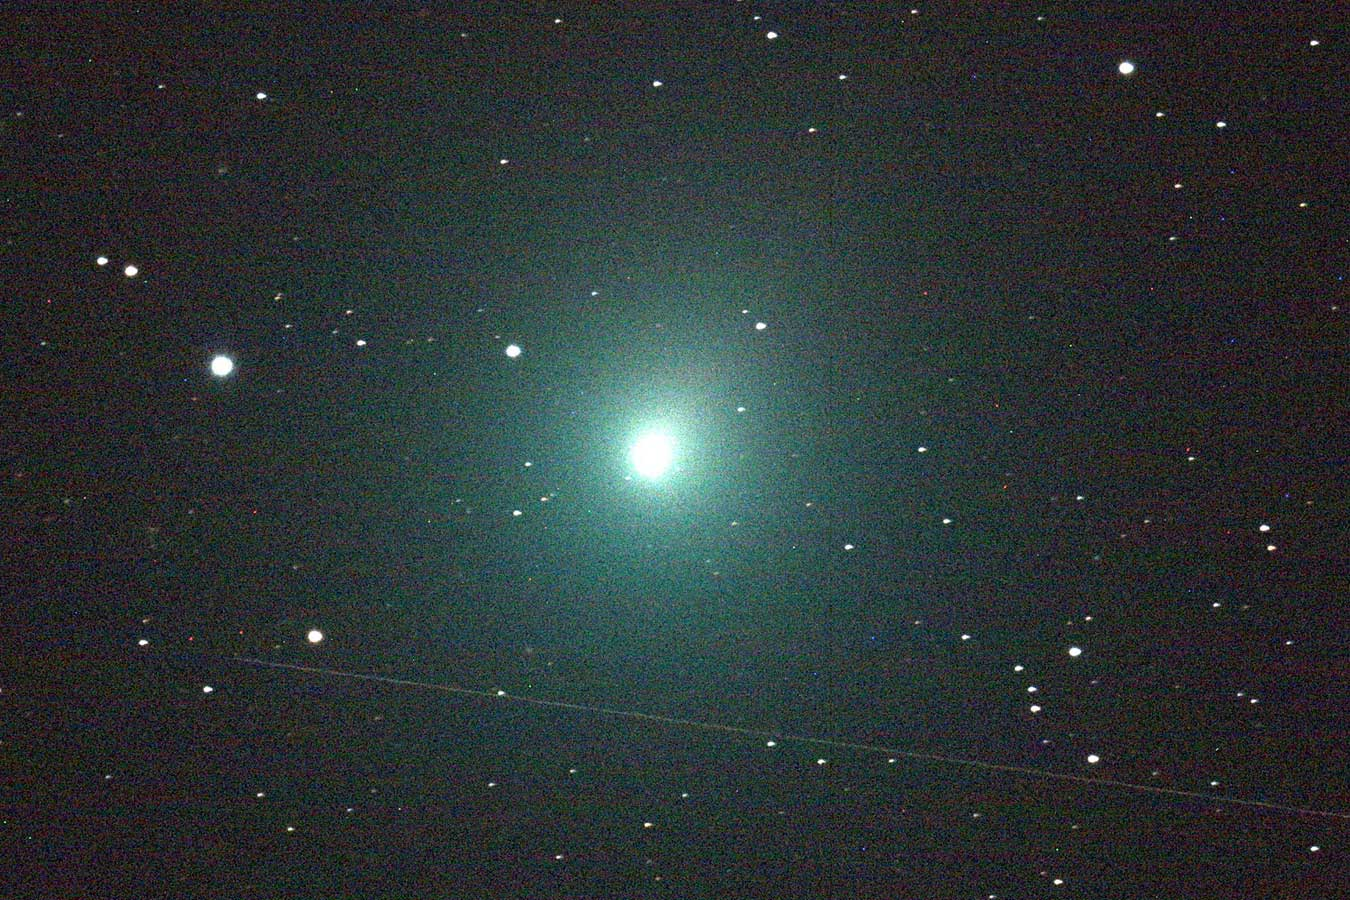 The brightest comet of the year will be visible this Sunday